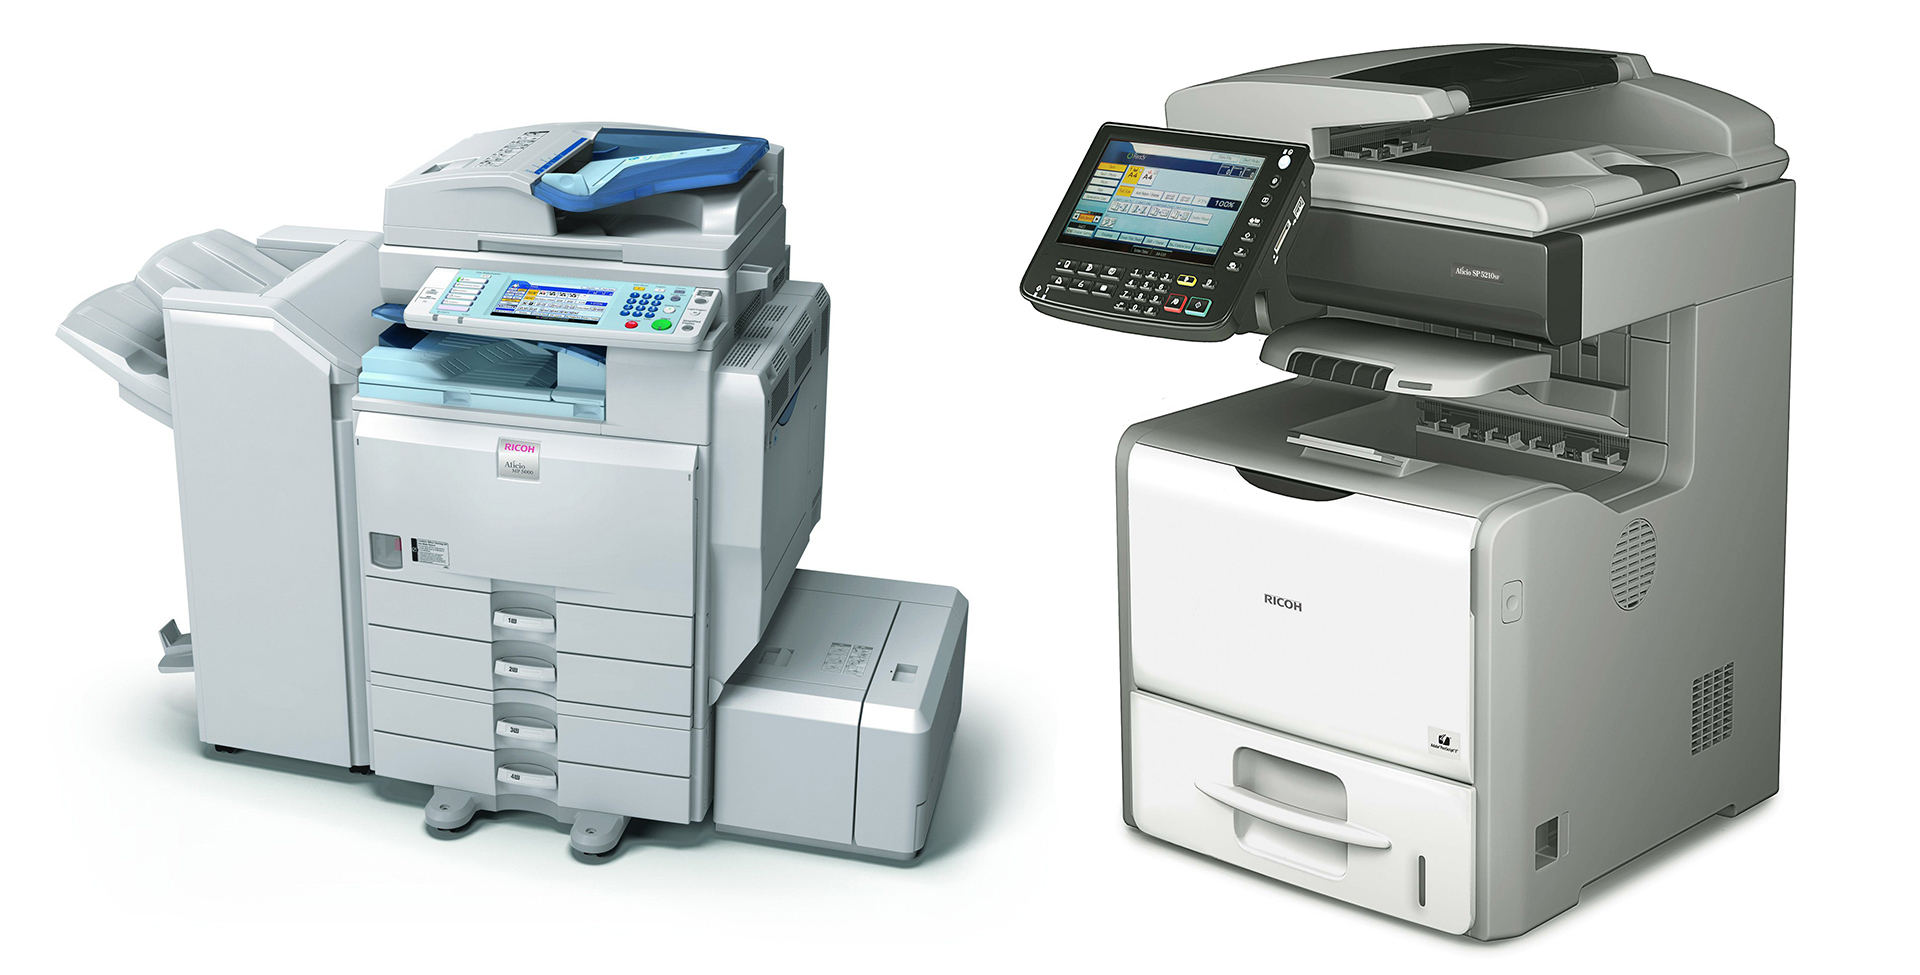 imprimante si multifunctionale ricoh